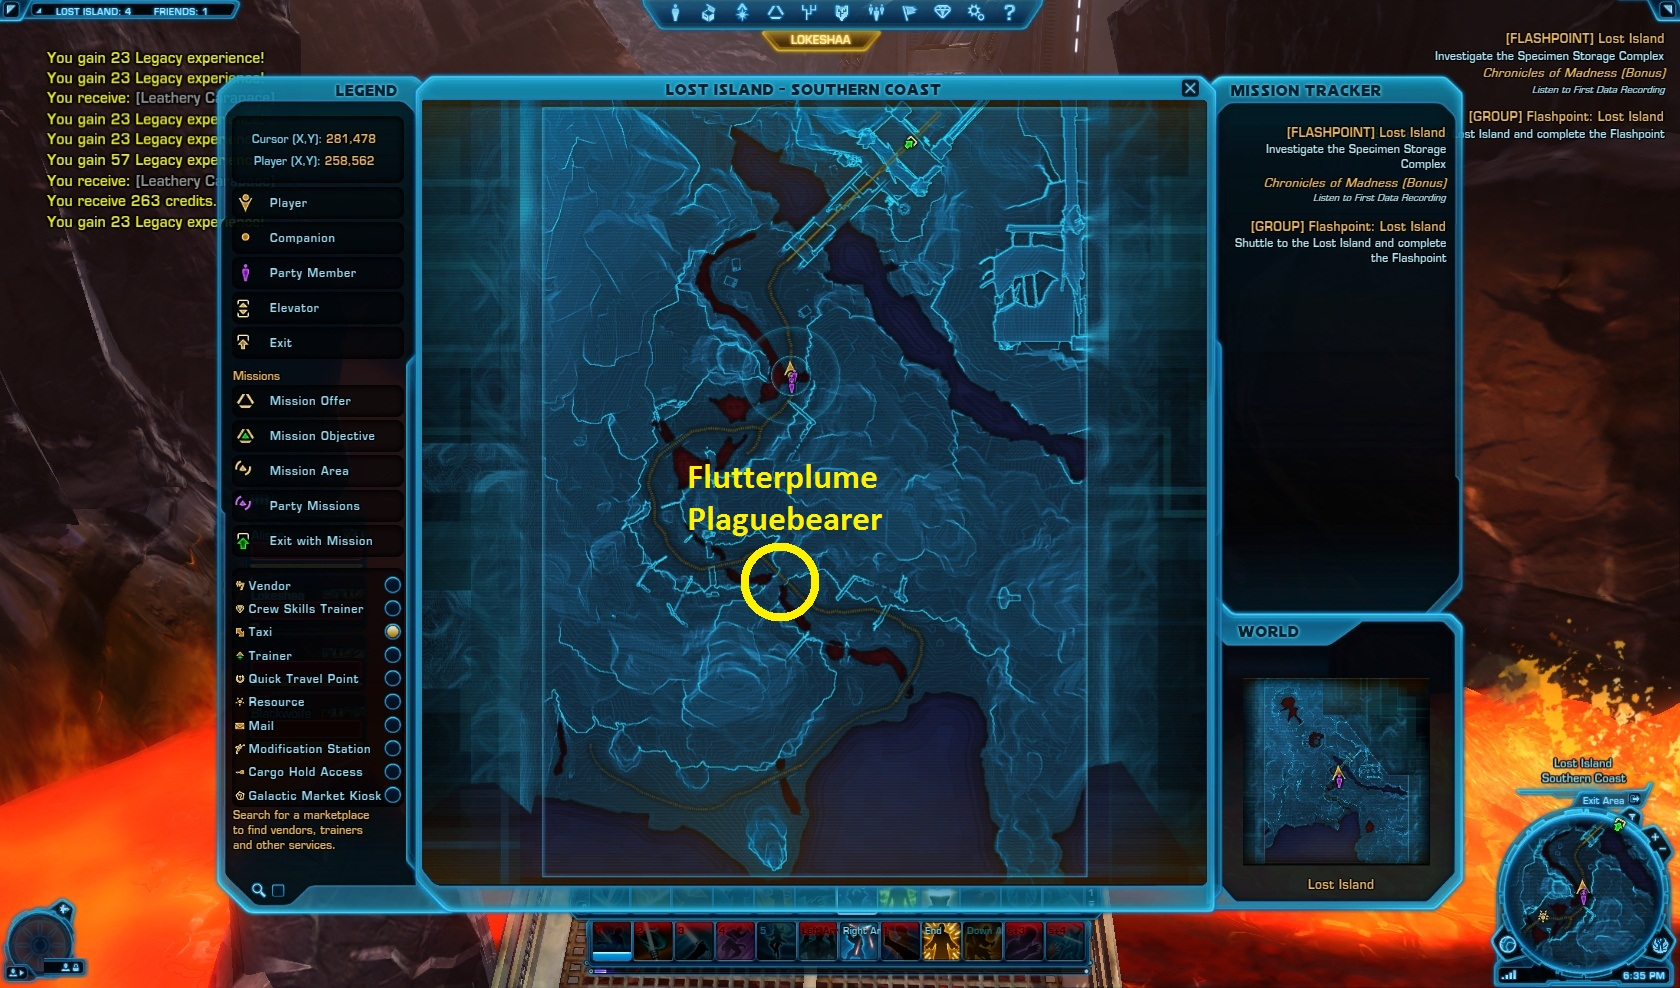 Flutterplume Plaguebearer location